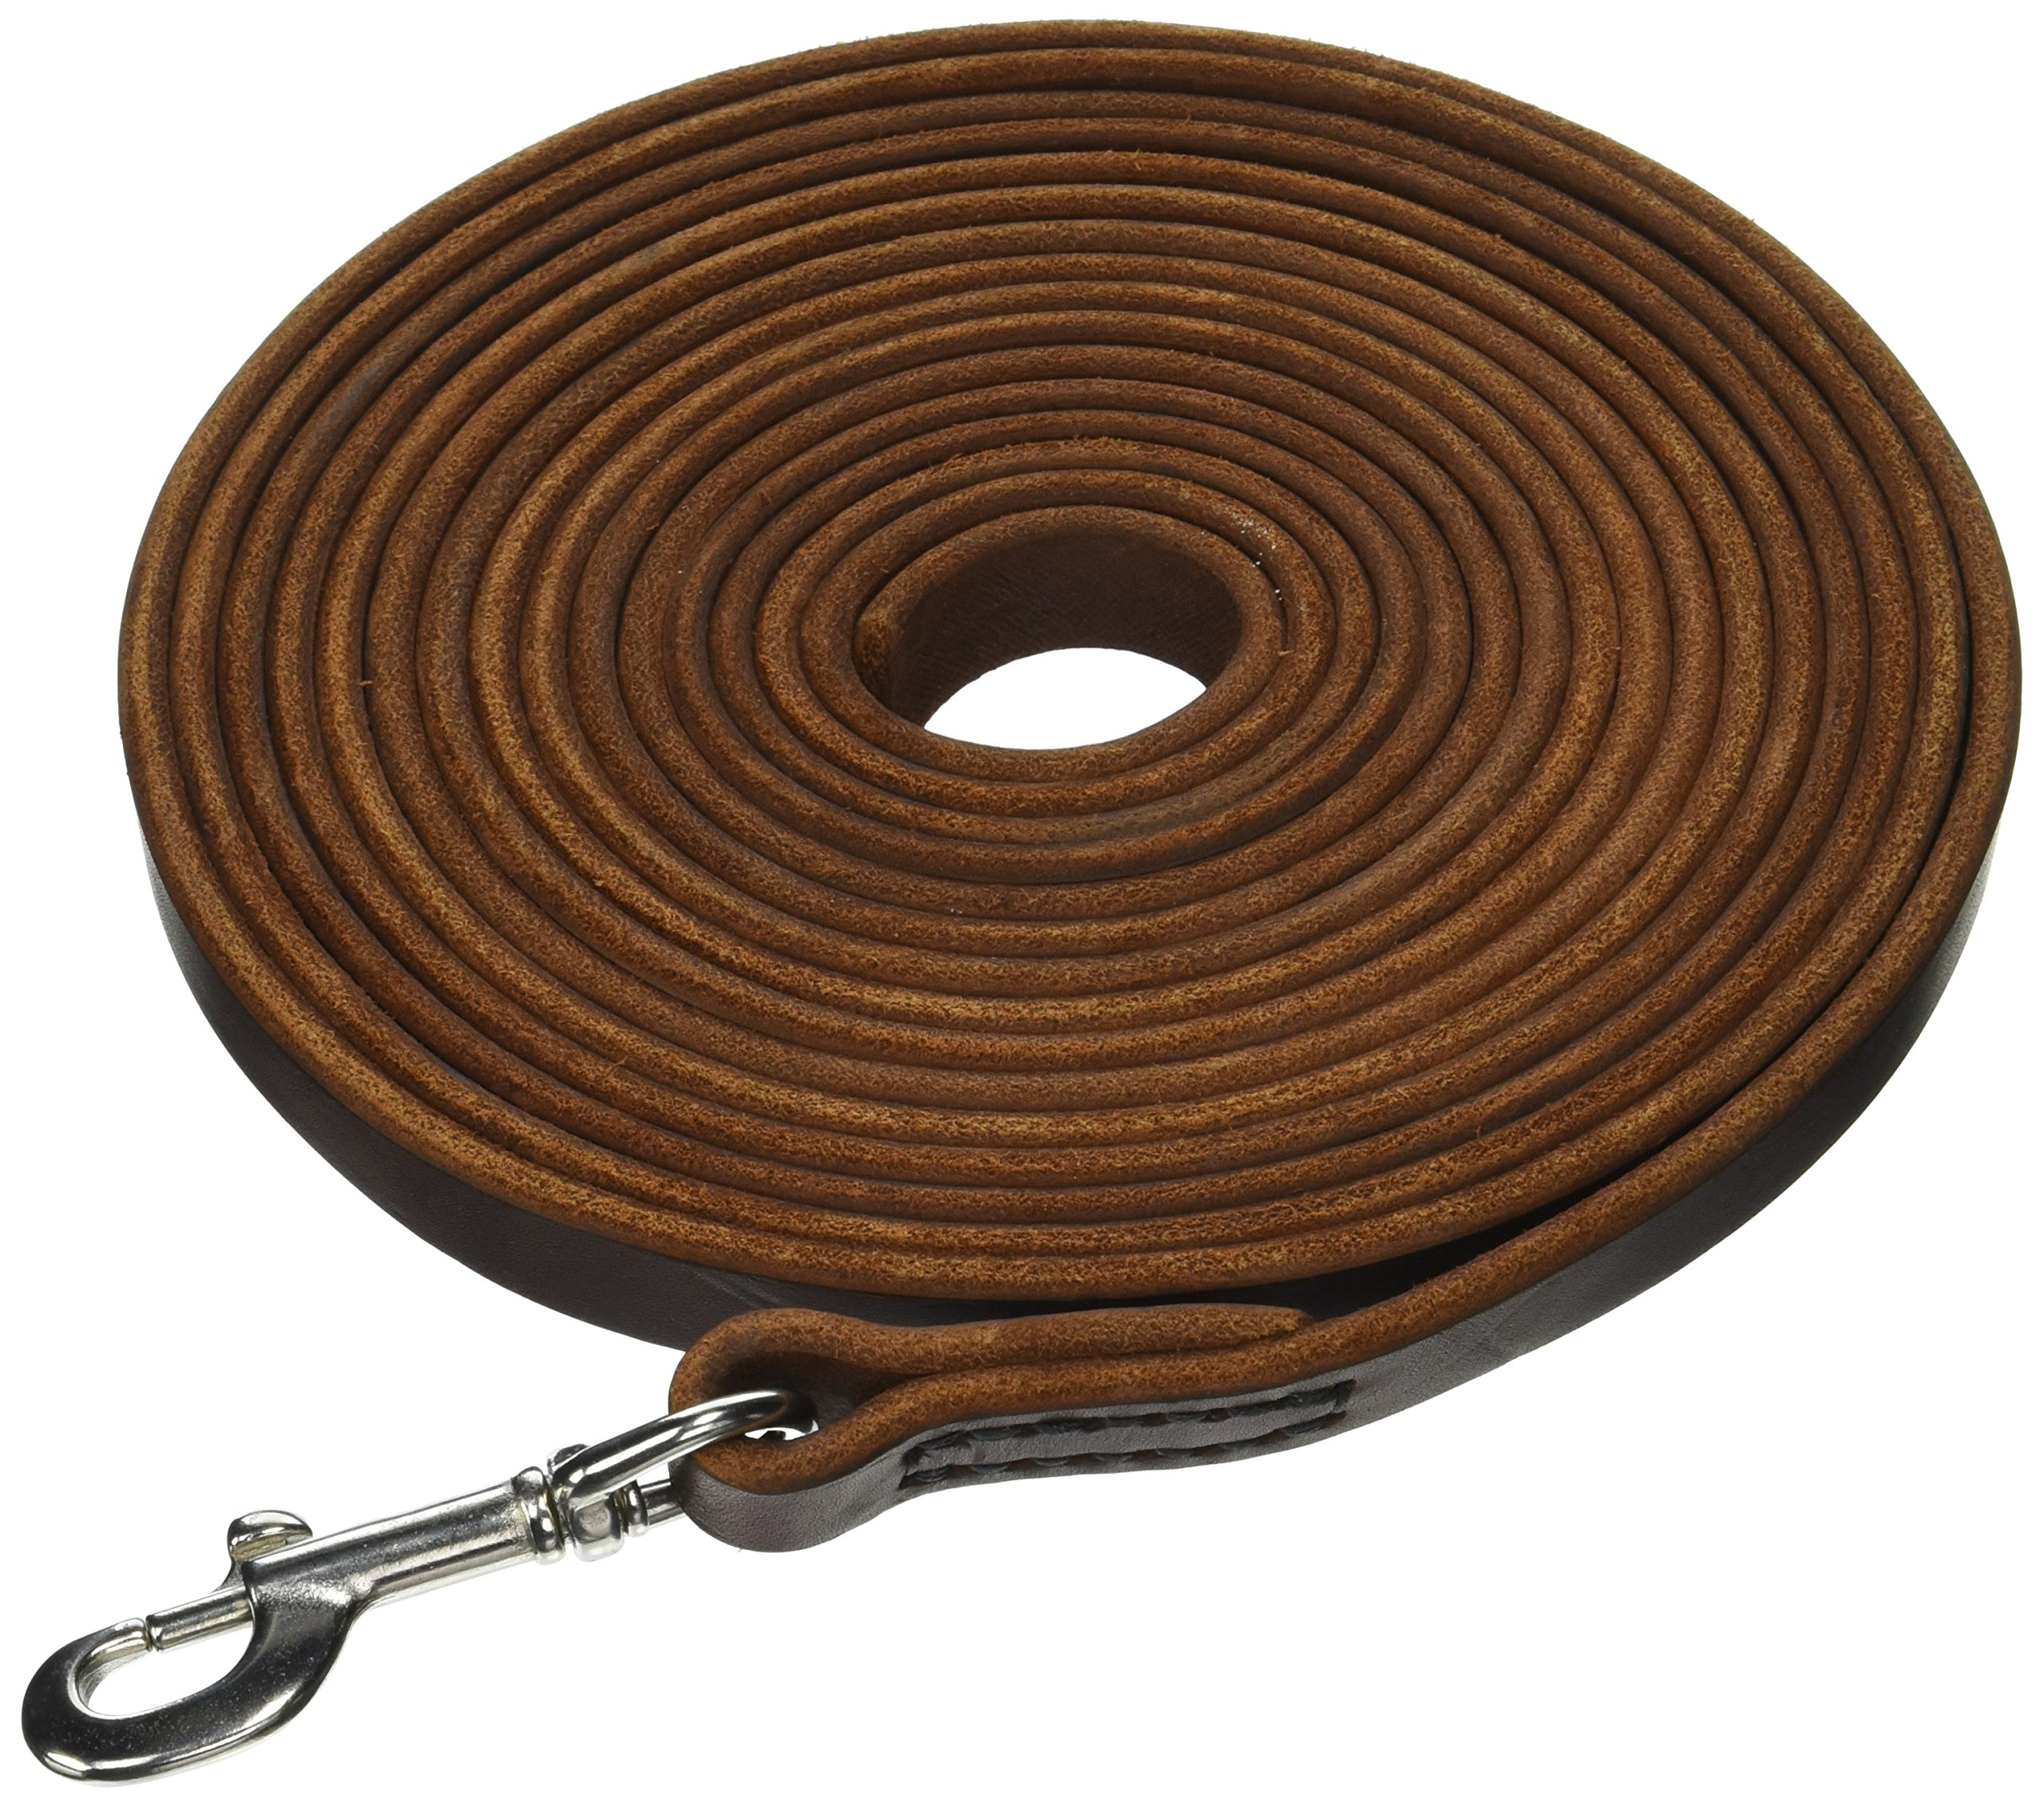 Dean and Tyler Stitched Track Dog Leash, Brown 20-Feet by 3/4-Inch Width With Stainless Steel Hardware. by Dean & Tyler (Image #1)